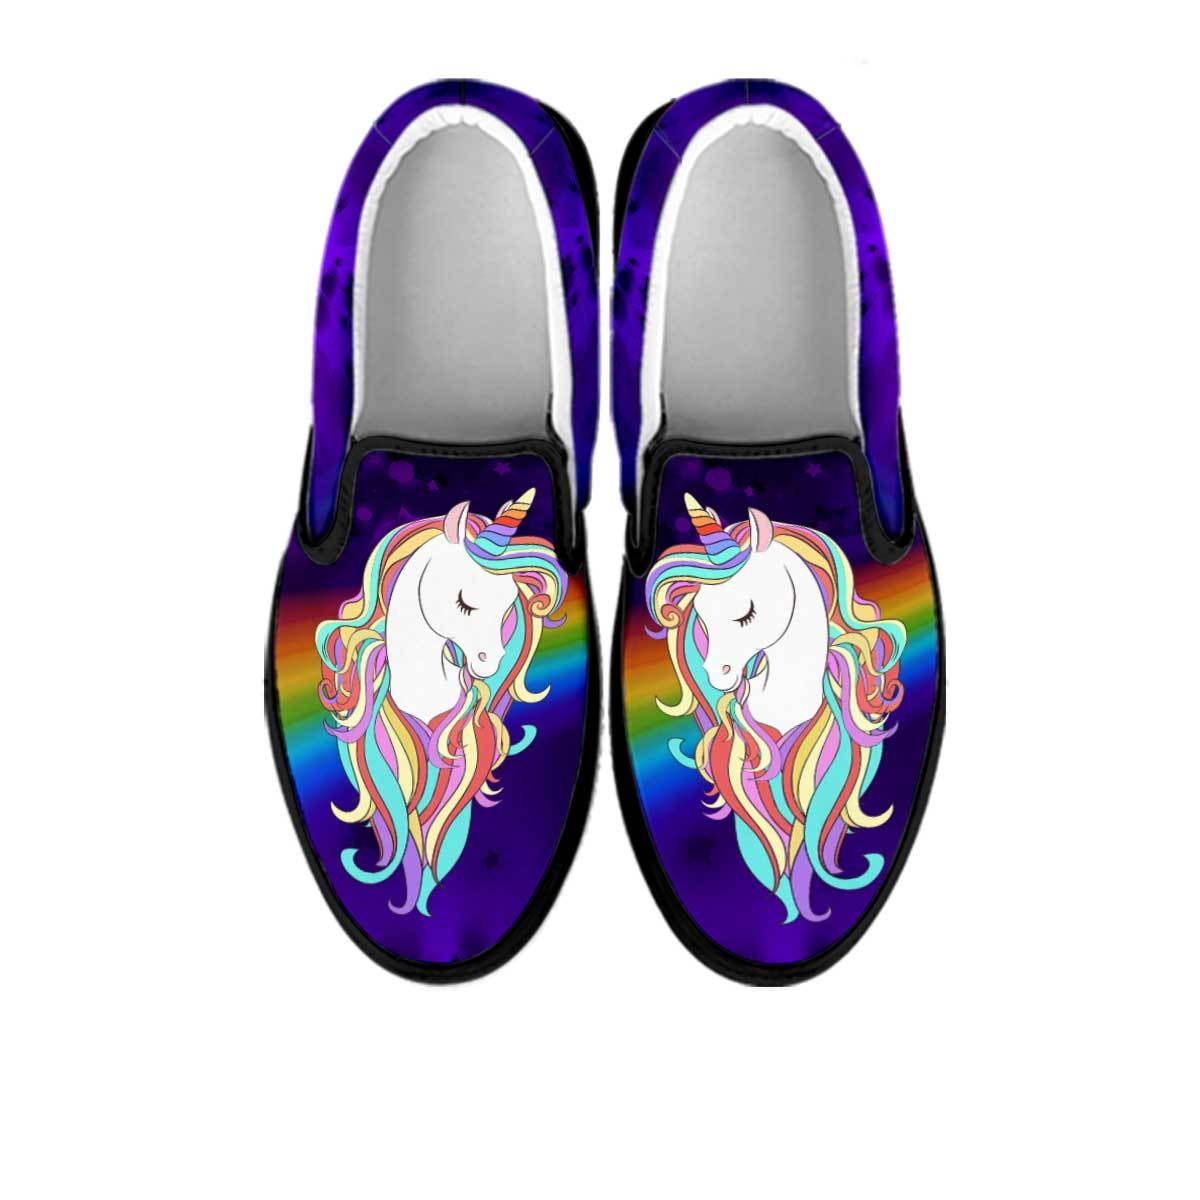 Magical Unicorn Slip On Sneakers sneakers